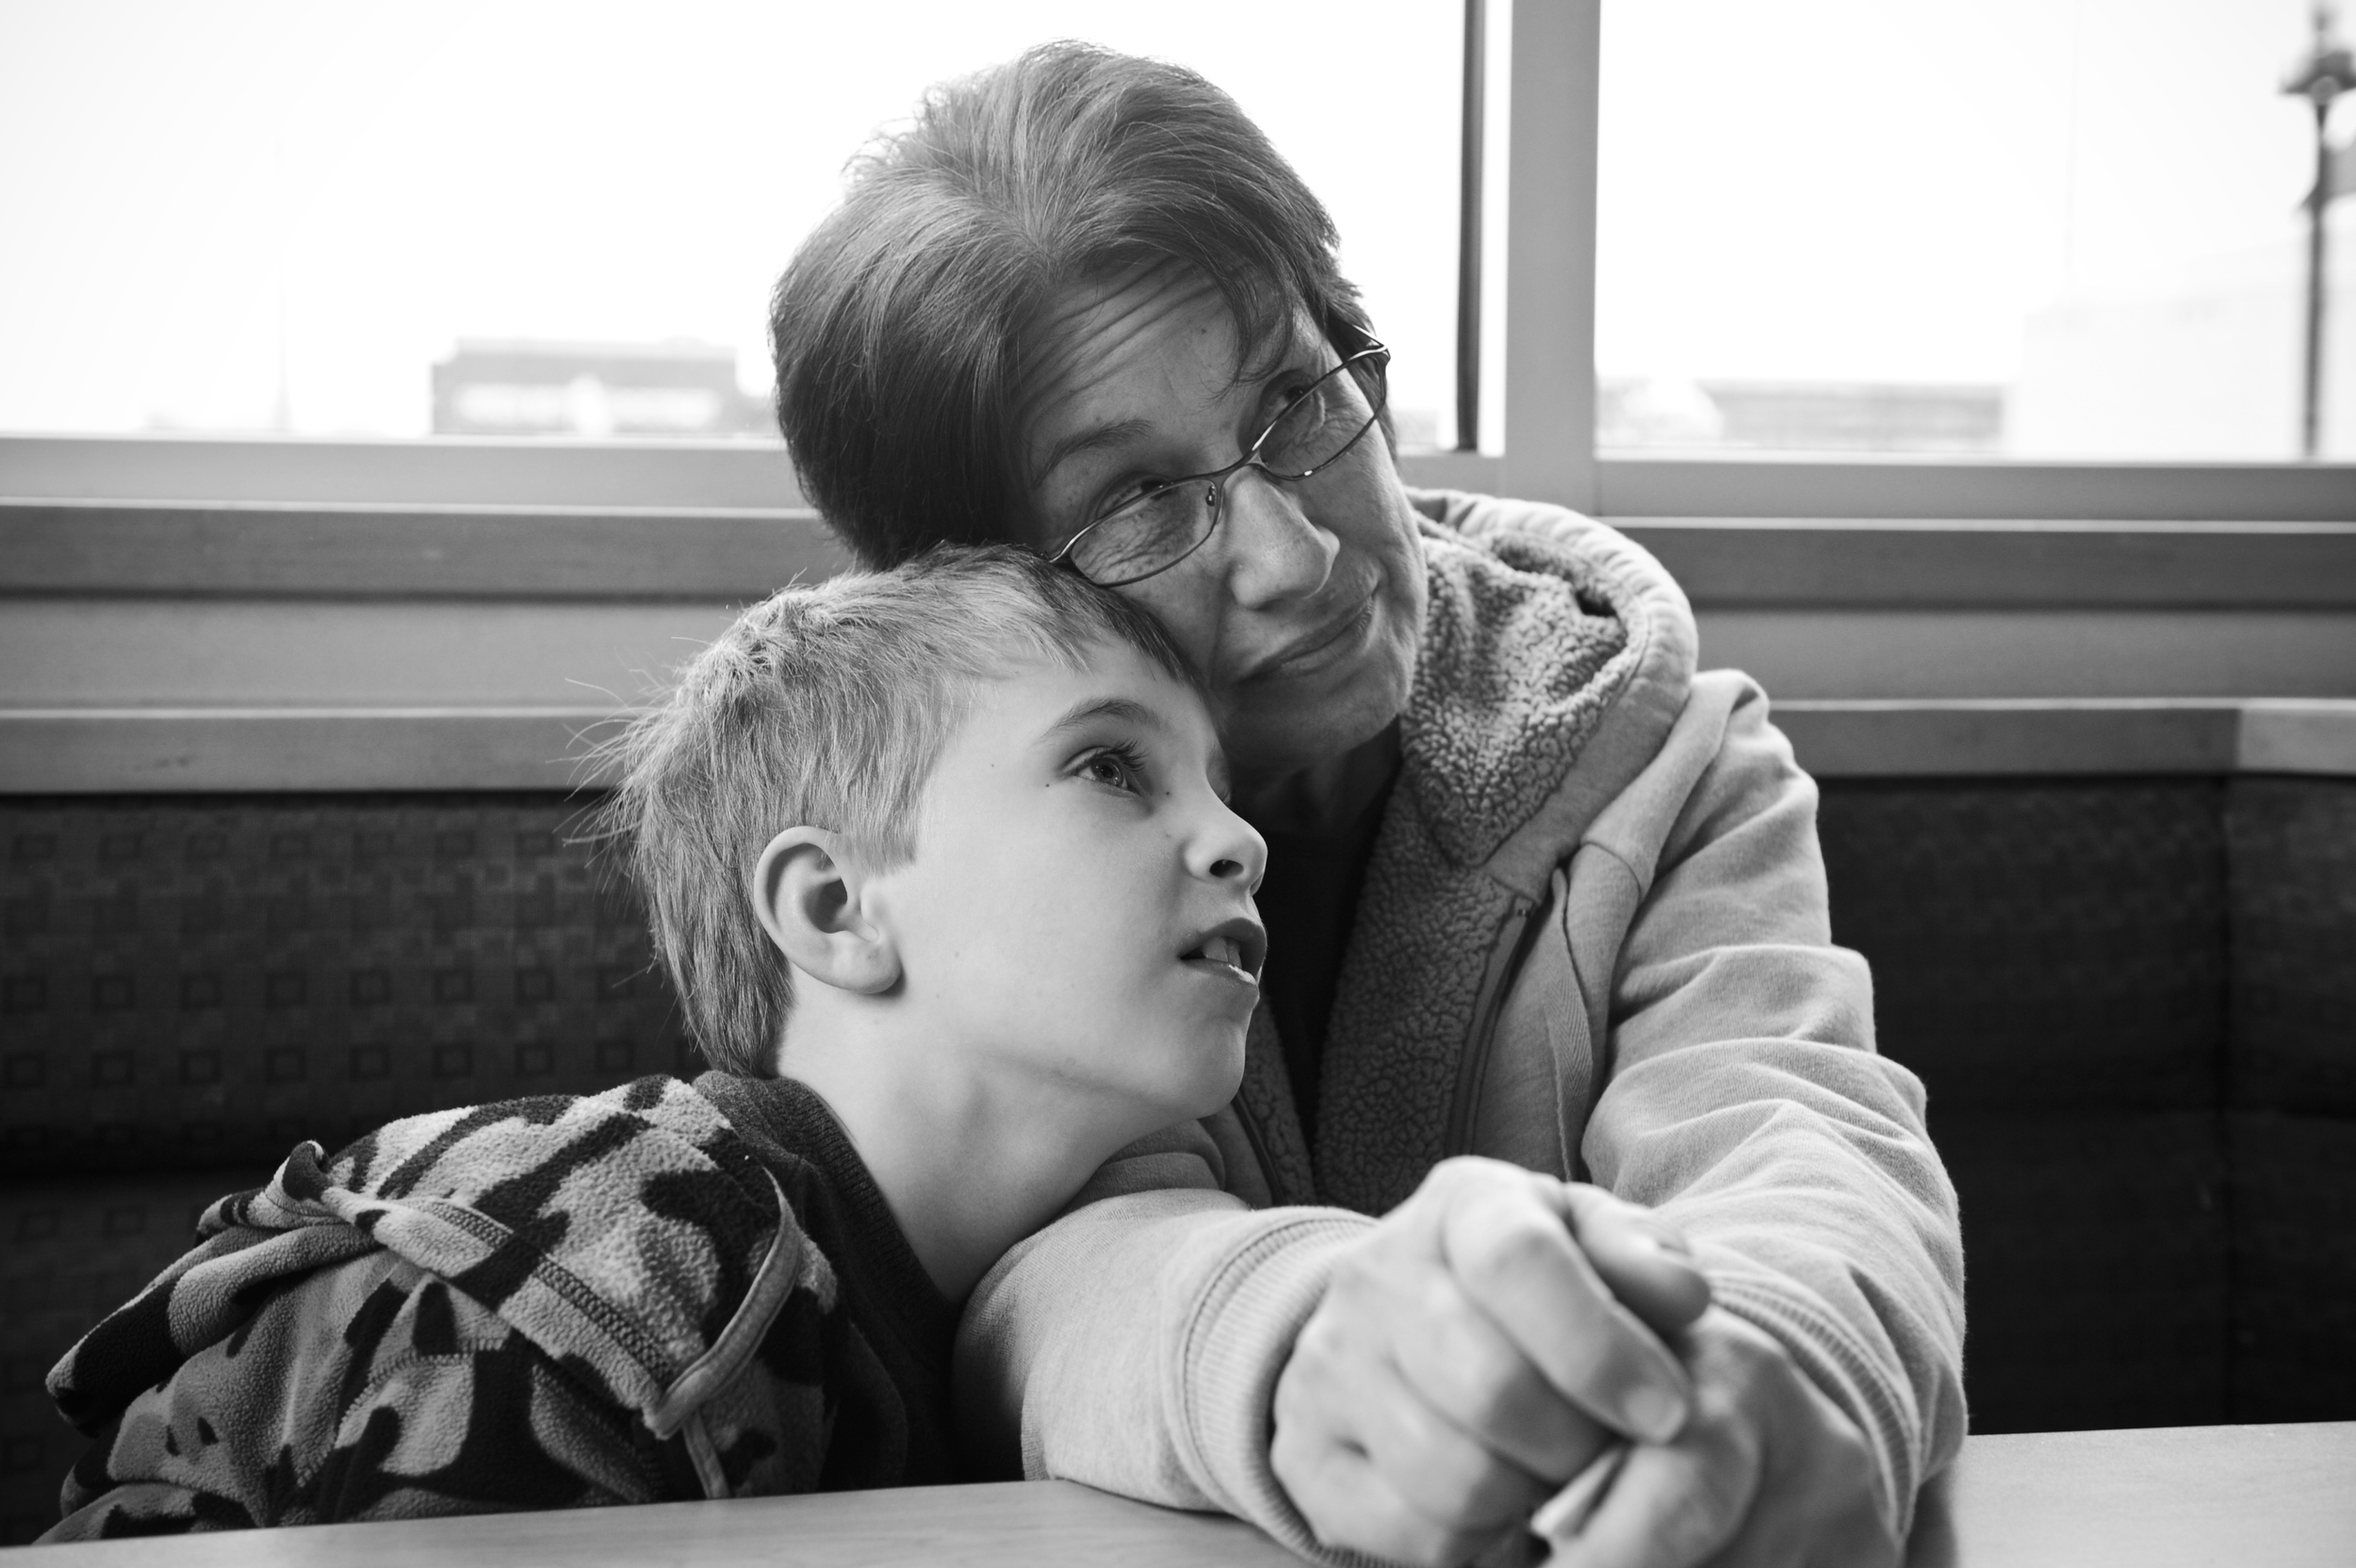 Jonesand her adopted step grandson Brian,6, rest on each other at a Dairy Queen after a long day of school in Bowling Green, Ky.